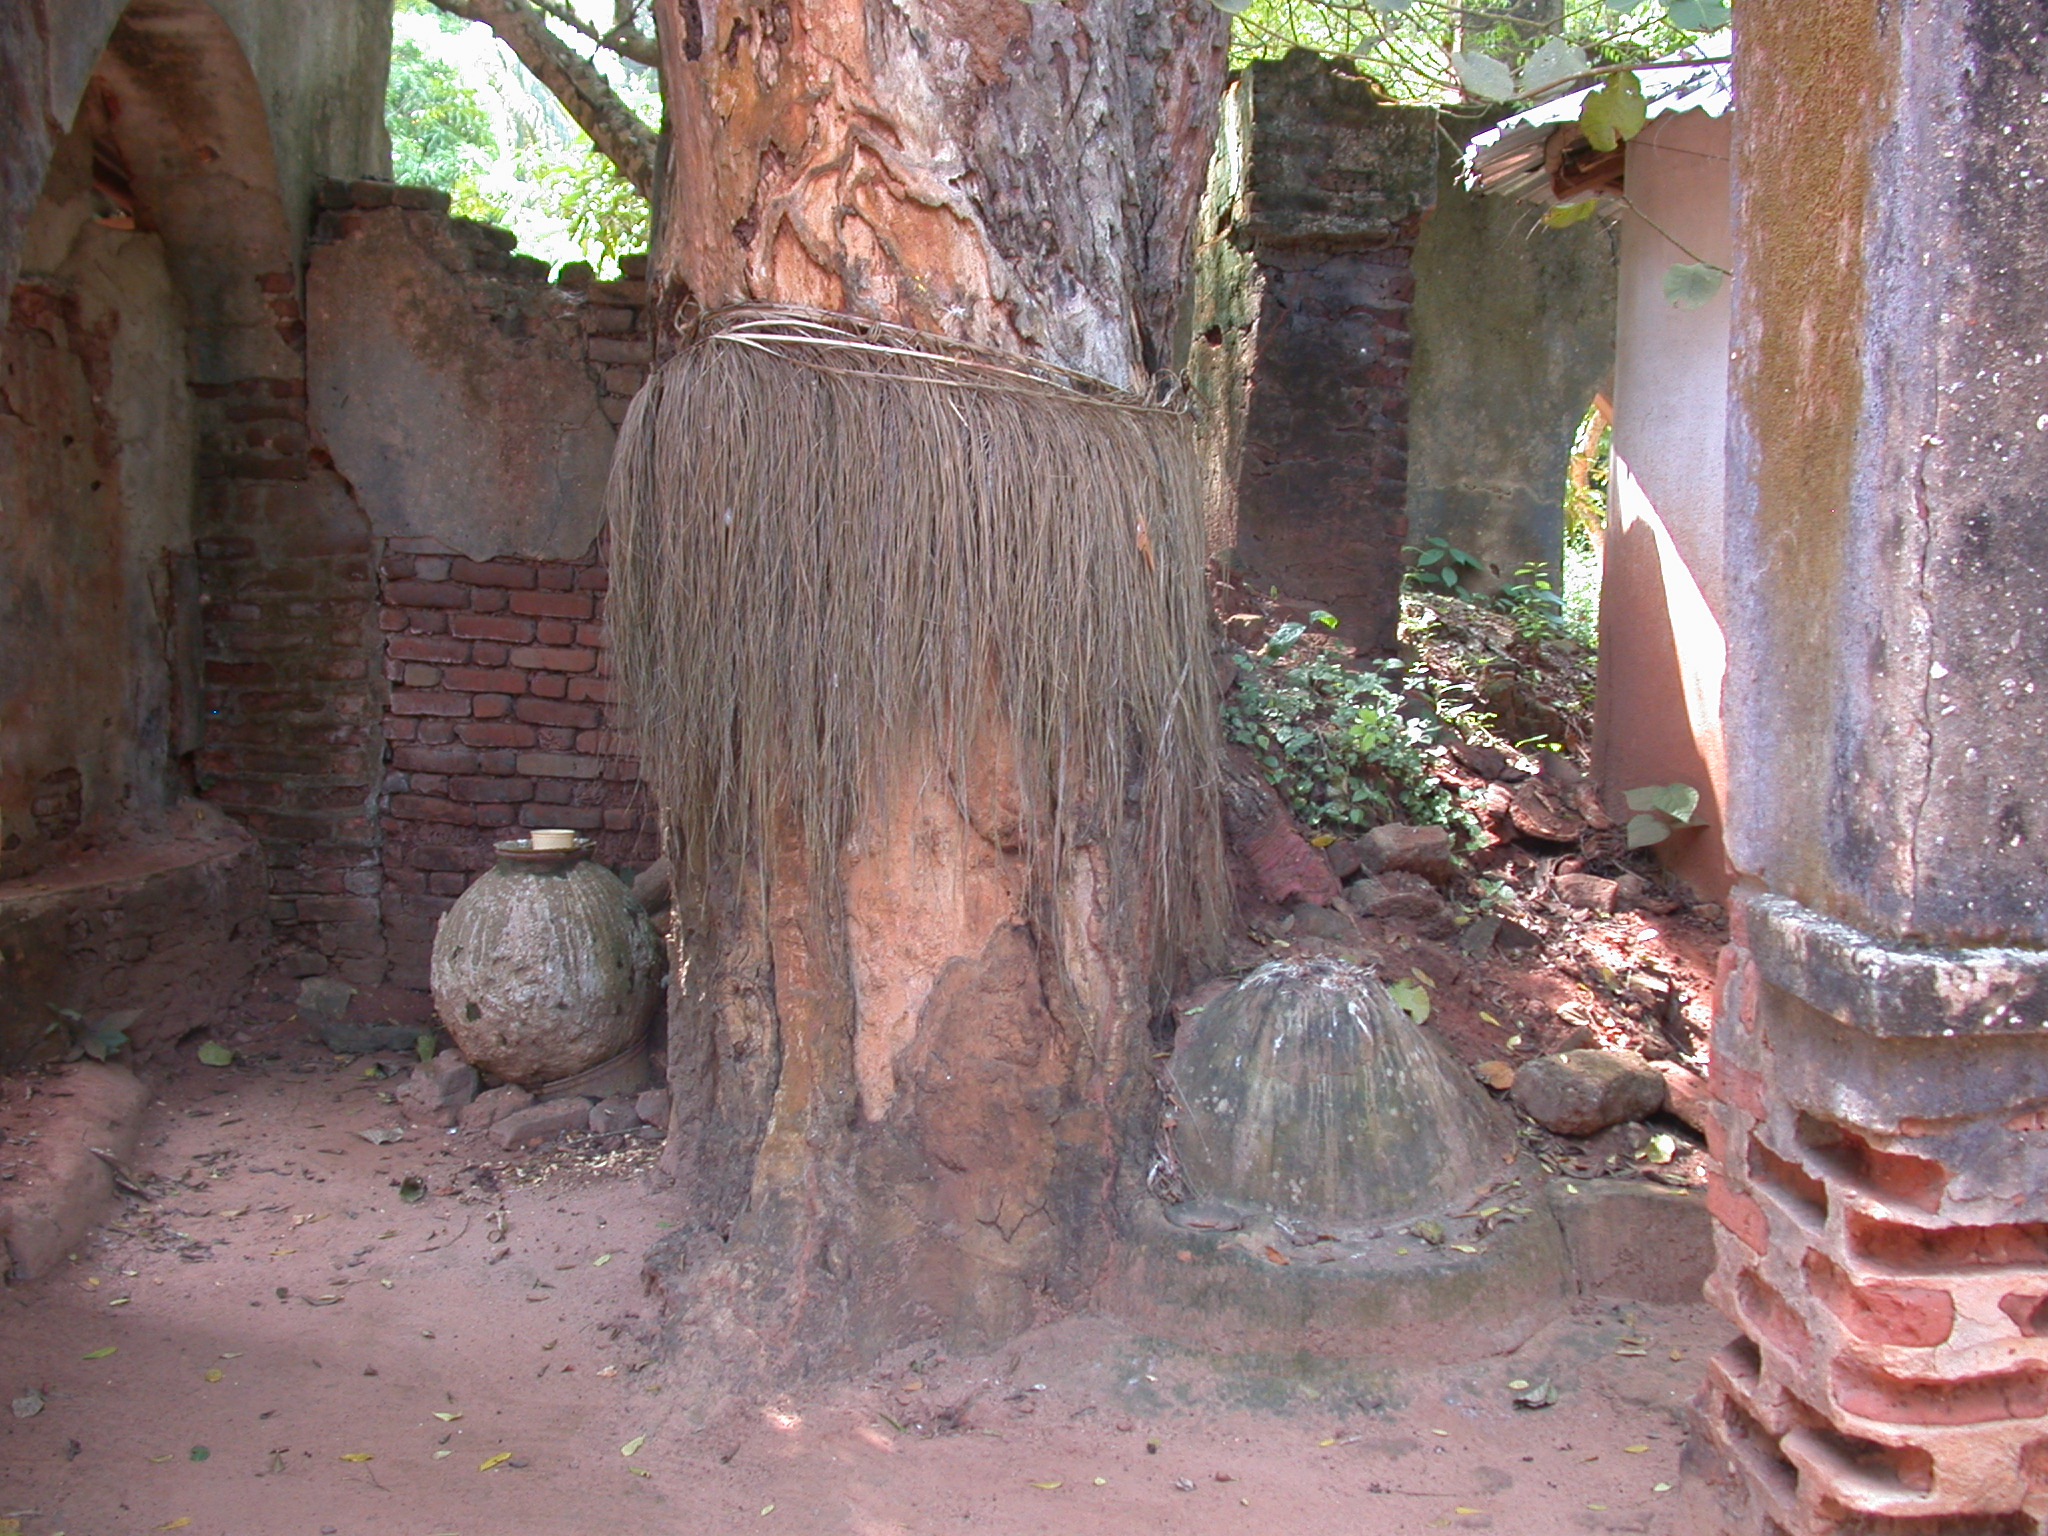 Shrine at Iroko Tree Said to Be King Kpasse, Kpasse Sacred Forest, Ouidah, Benin